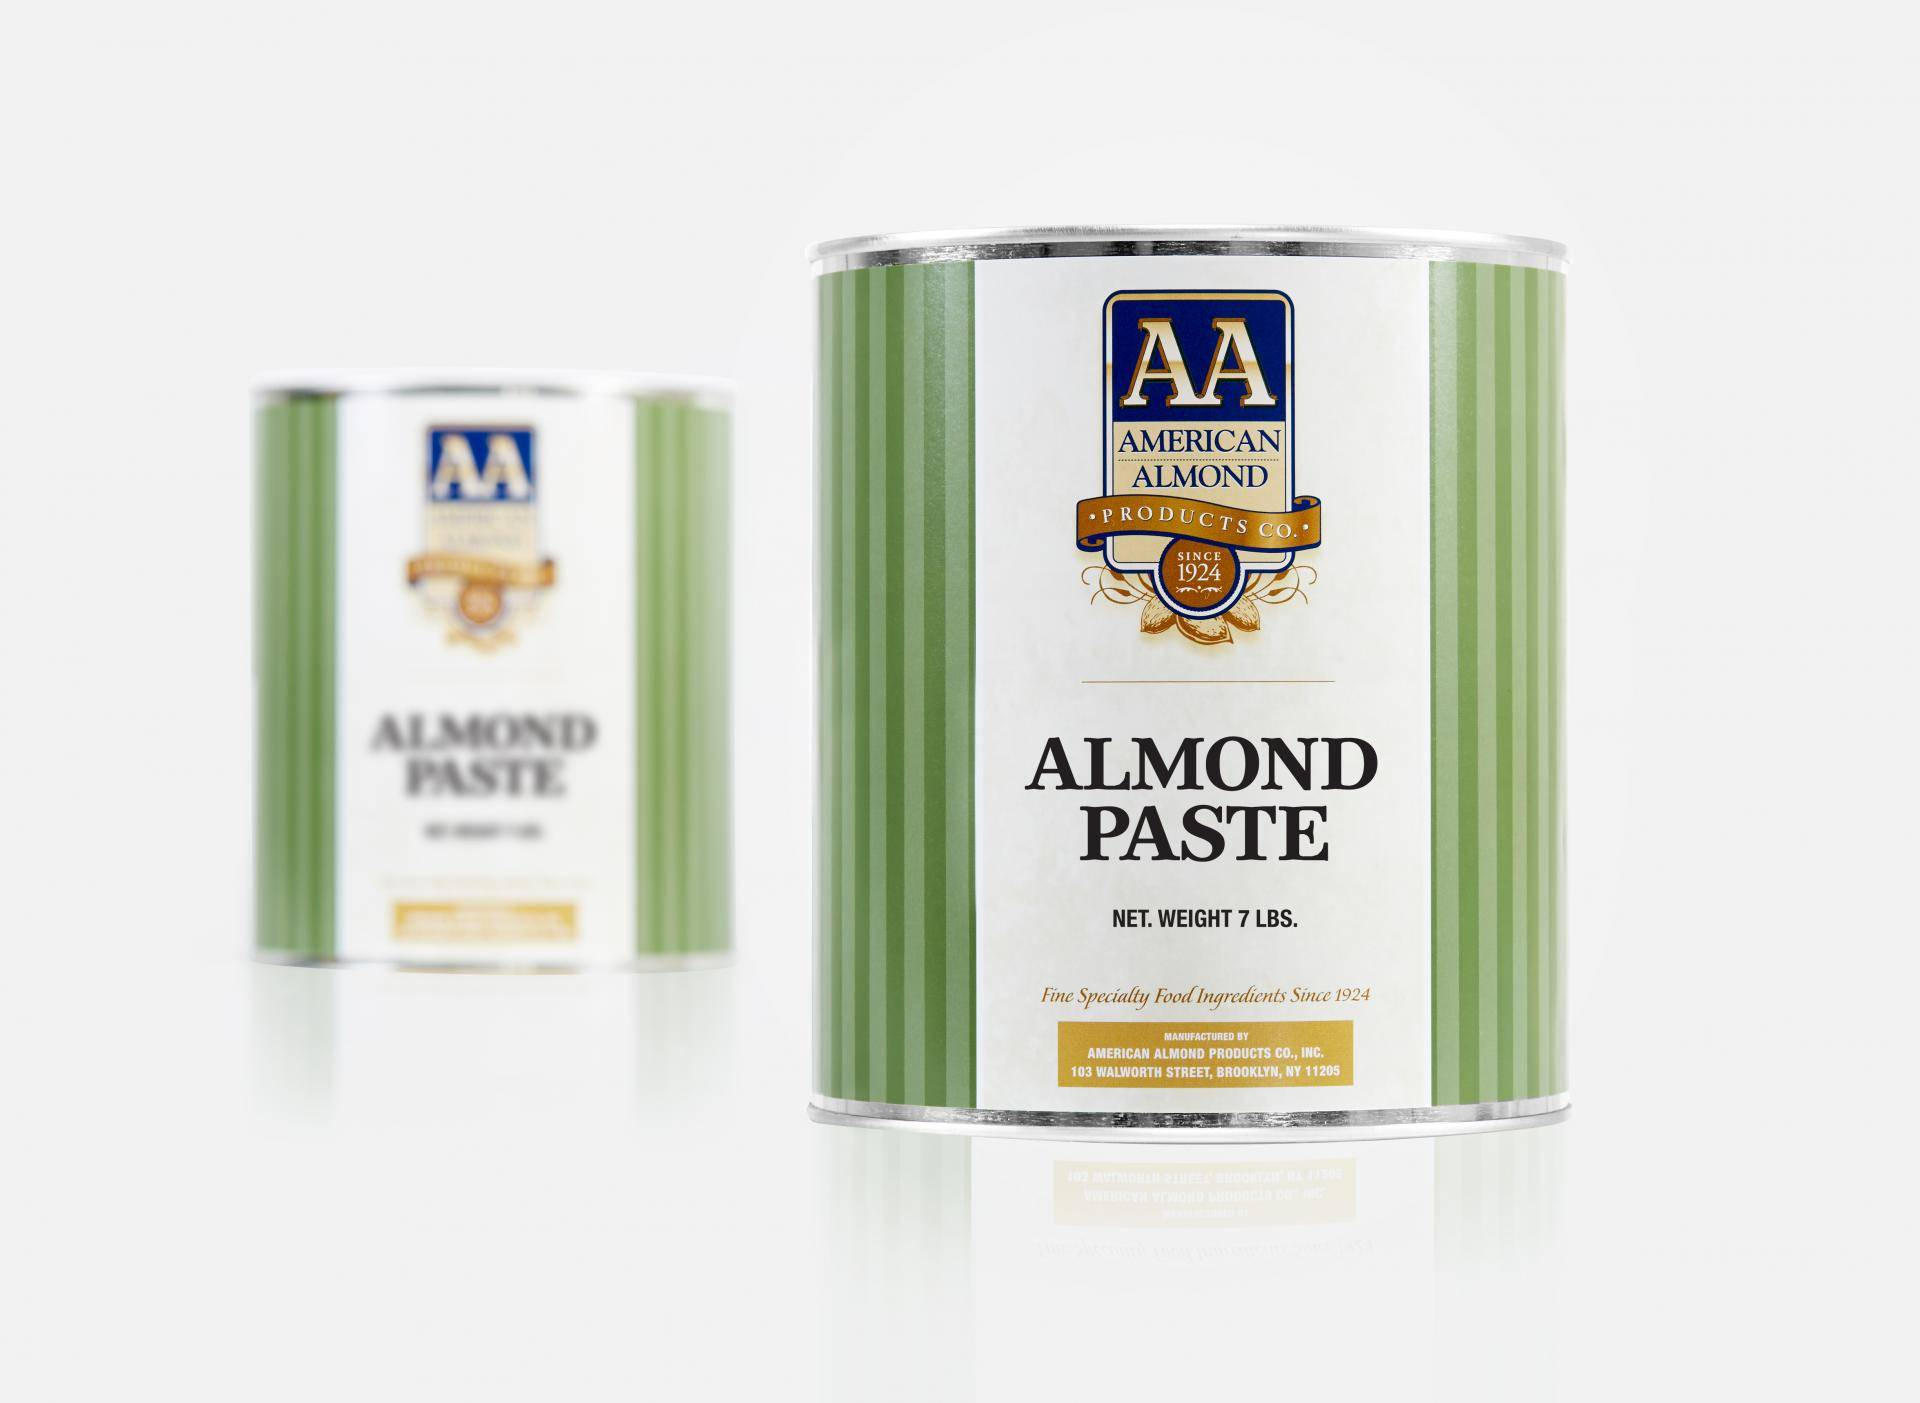 Almond paste can